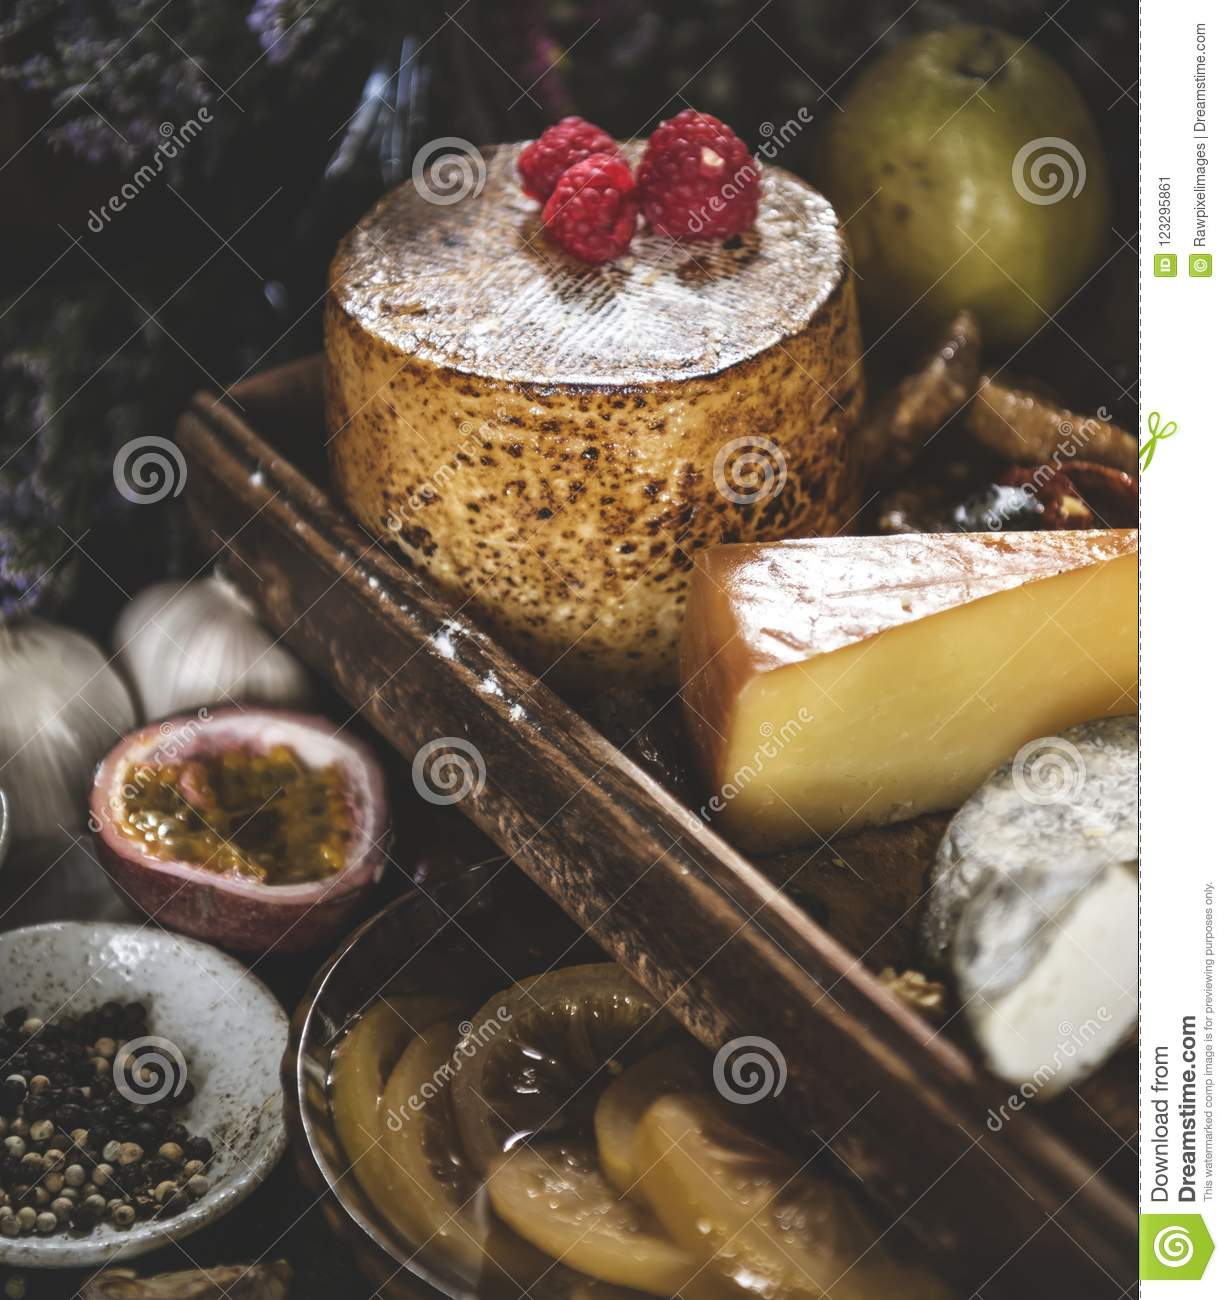 Cheese Platter Food Photography Recipe Idea Stock Image Image Of Kitchen Home 123295861